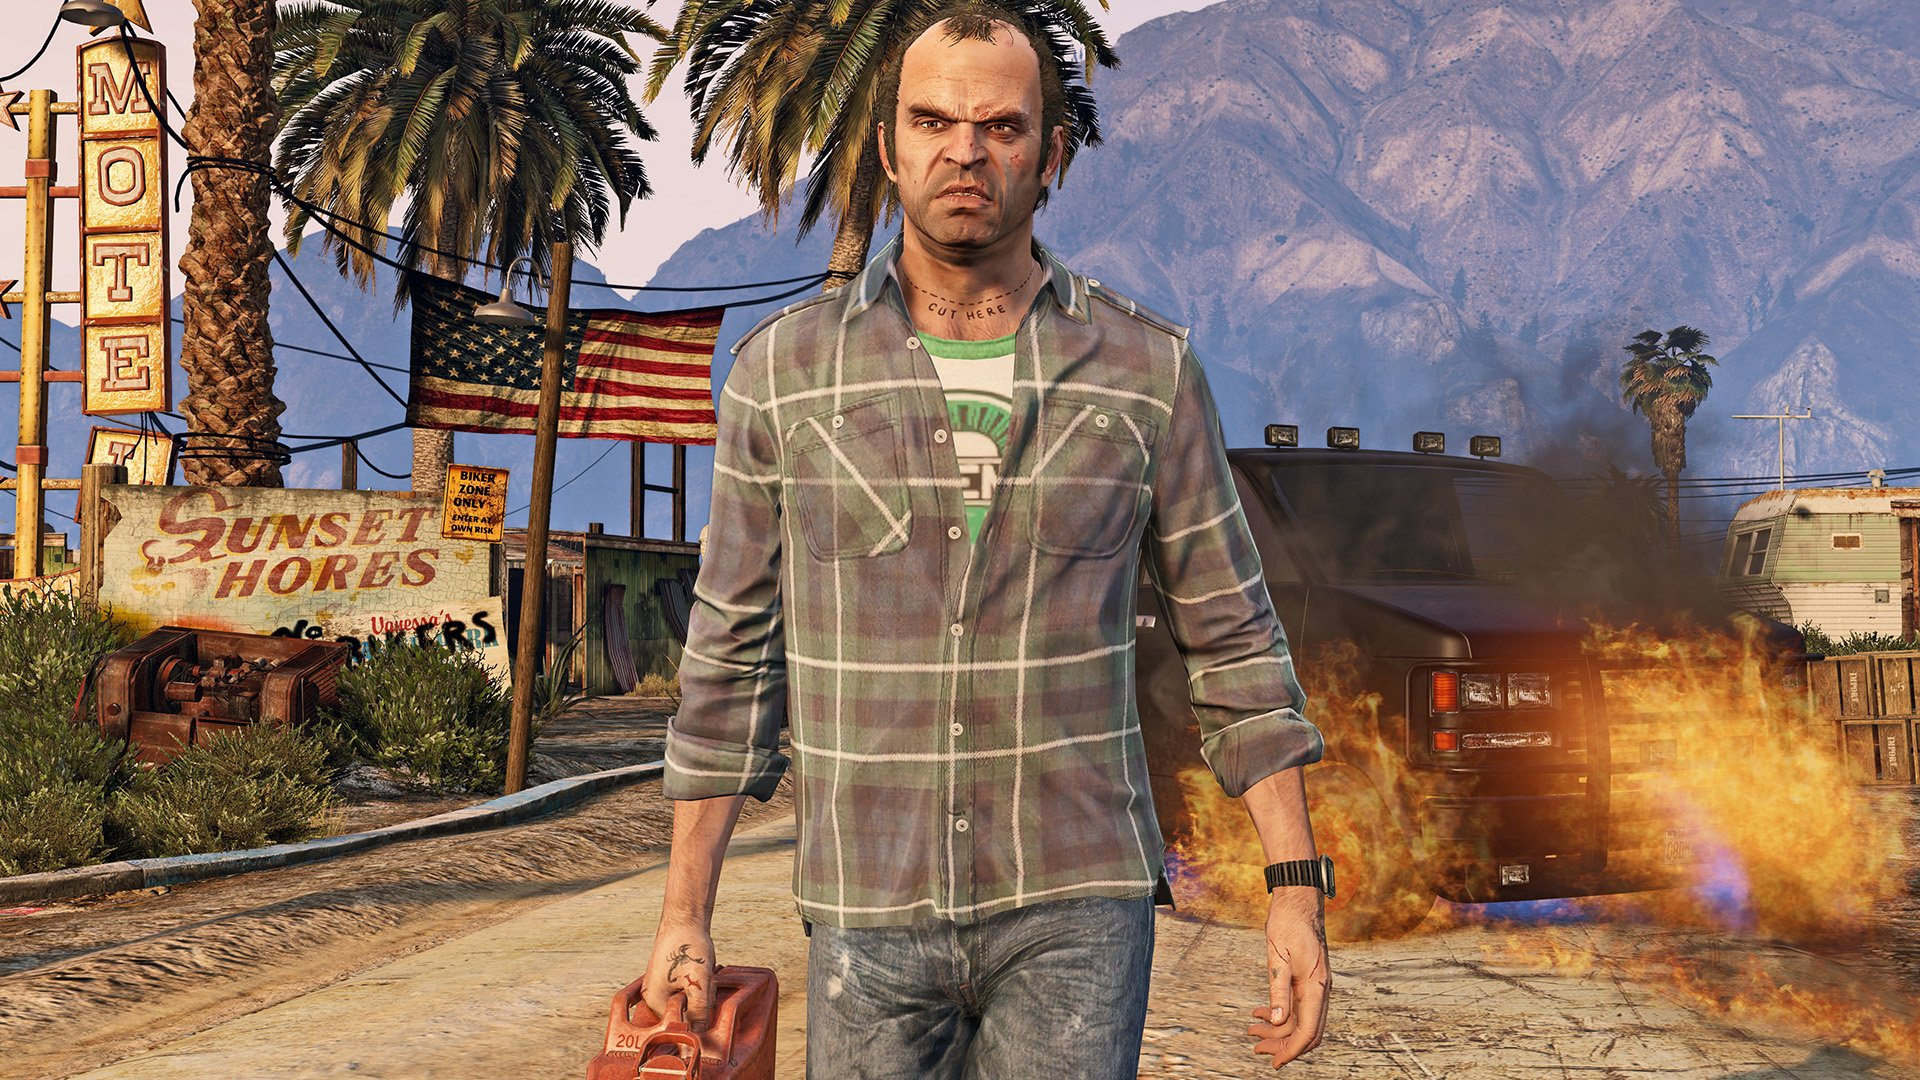 The writers of GTA don't get enough credit for the stories they tell